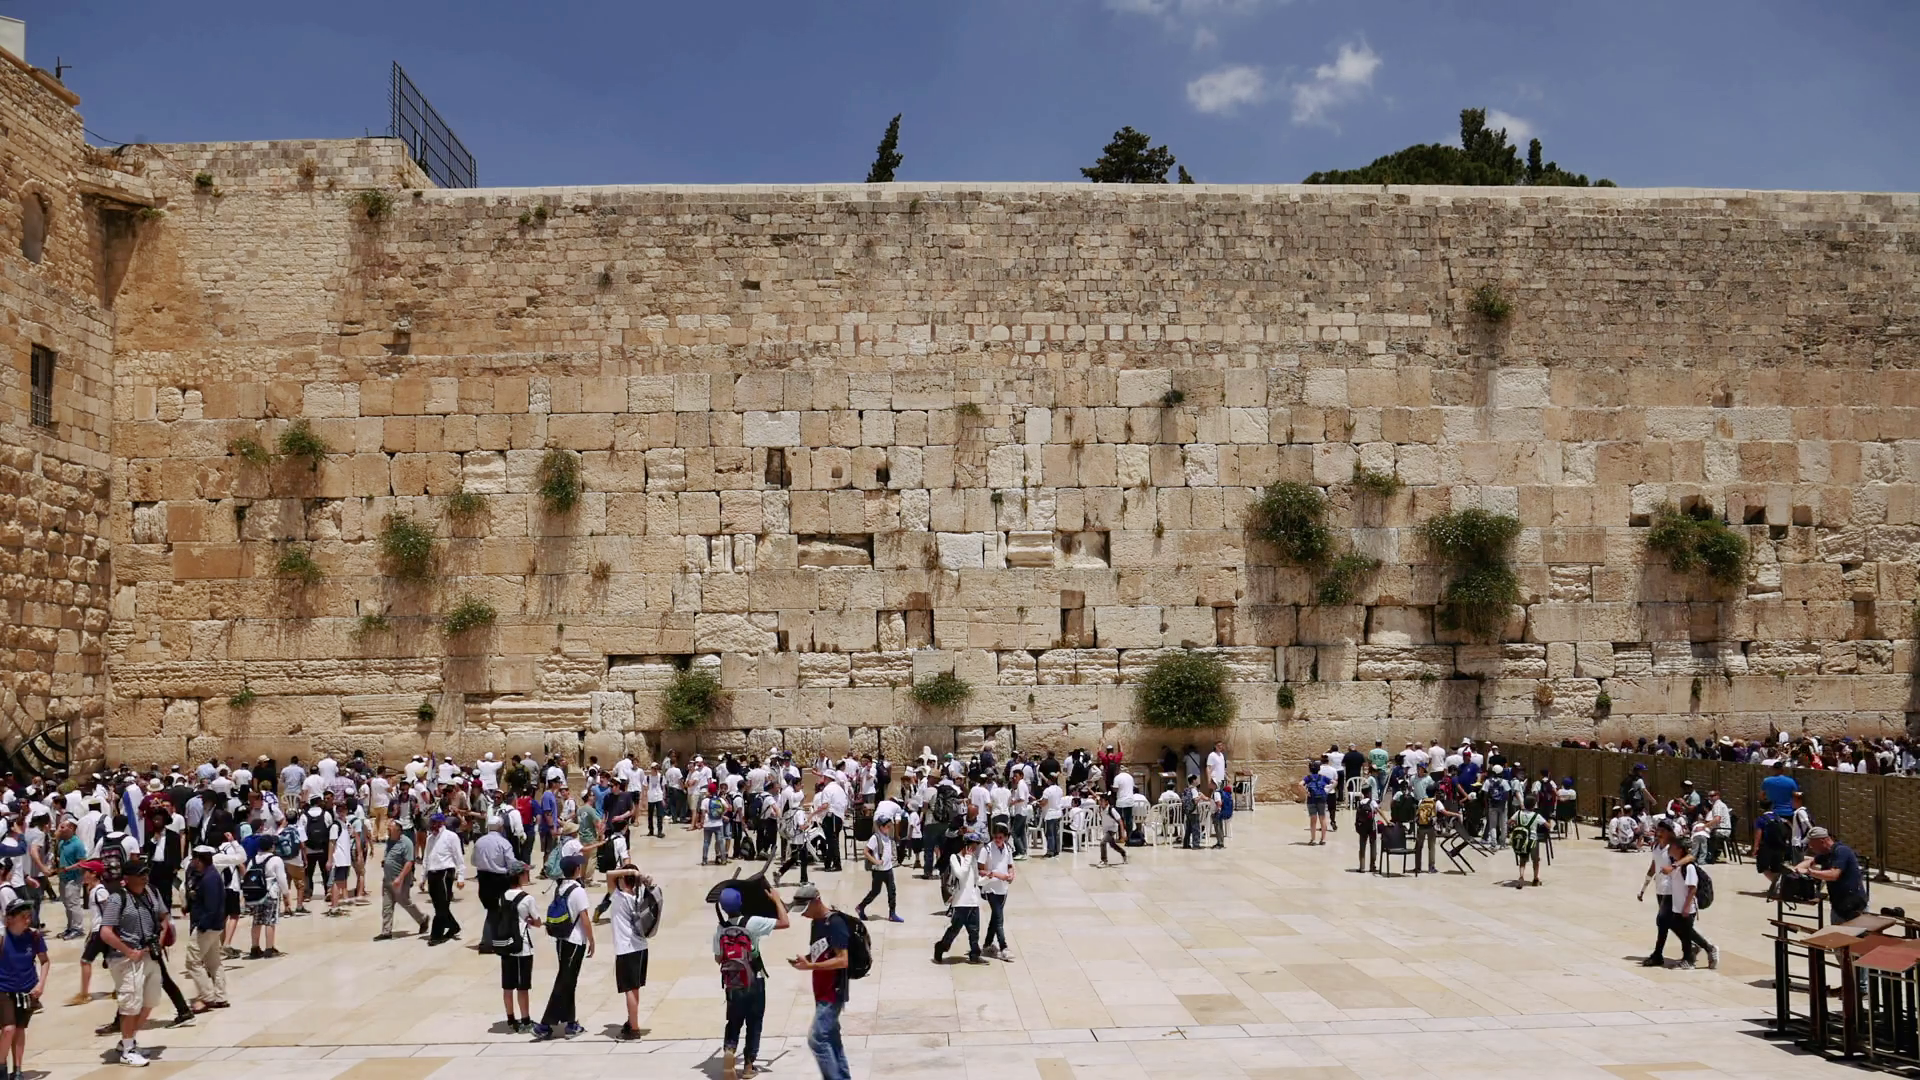 videoblocks-western-wall-or-wailing-wall-or-kotel-in-jerusalem-timelapse-plenty-of-people-come-to-pray-to-the-jerusalem-western-wall-the-wall-is-the-most-sacred-place-for-all-jews-on-the-planet_rvctjvrzw_thumbnail-full01.png